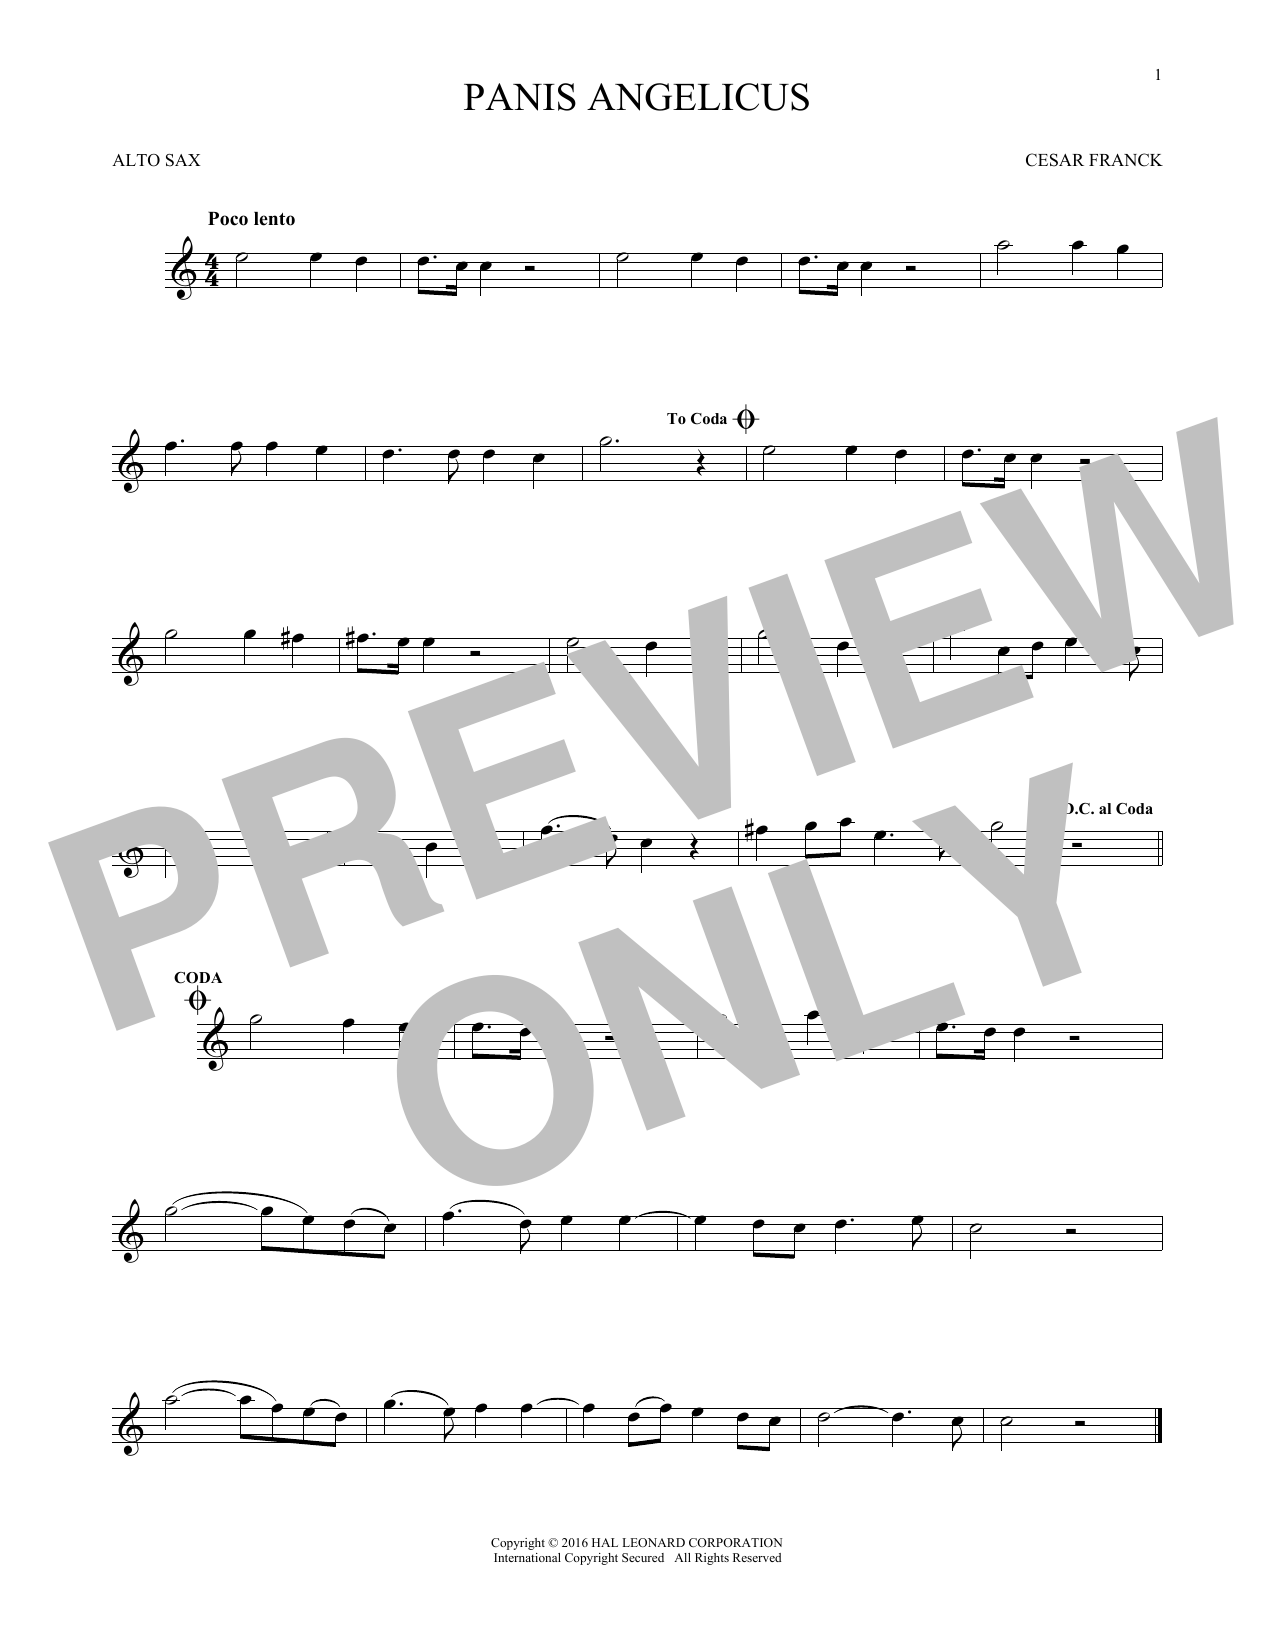 Panis Angelicus (O Lord Most Holy) (Alto Sax Solo)